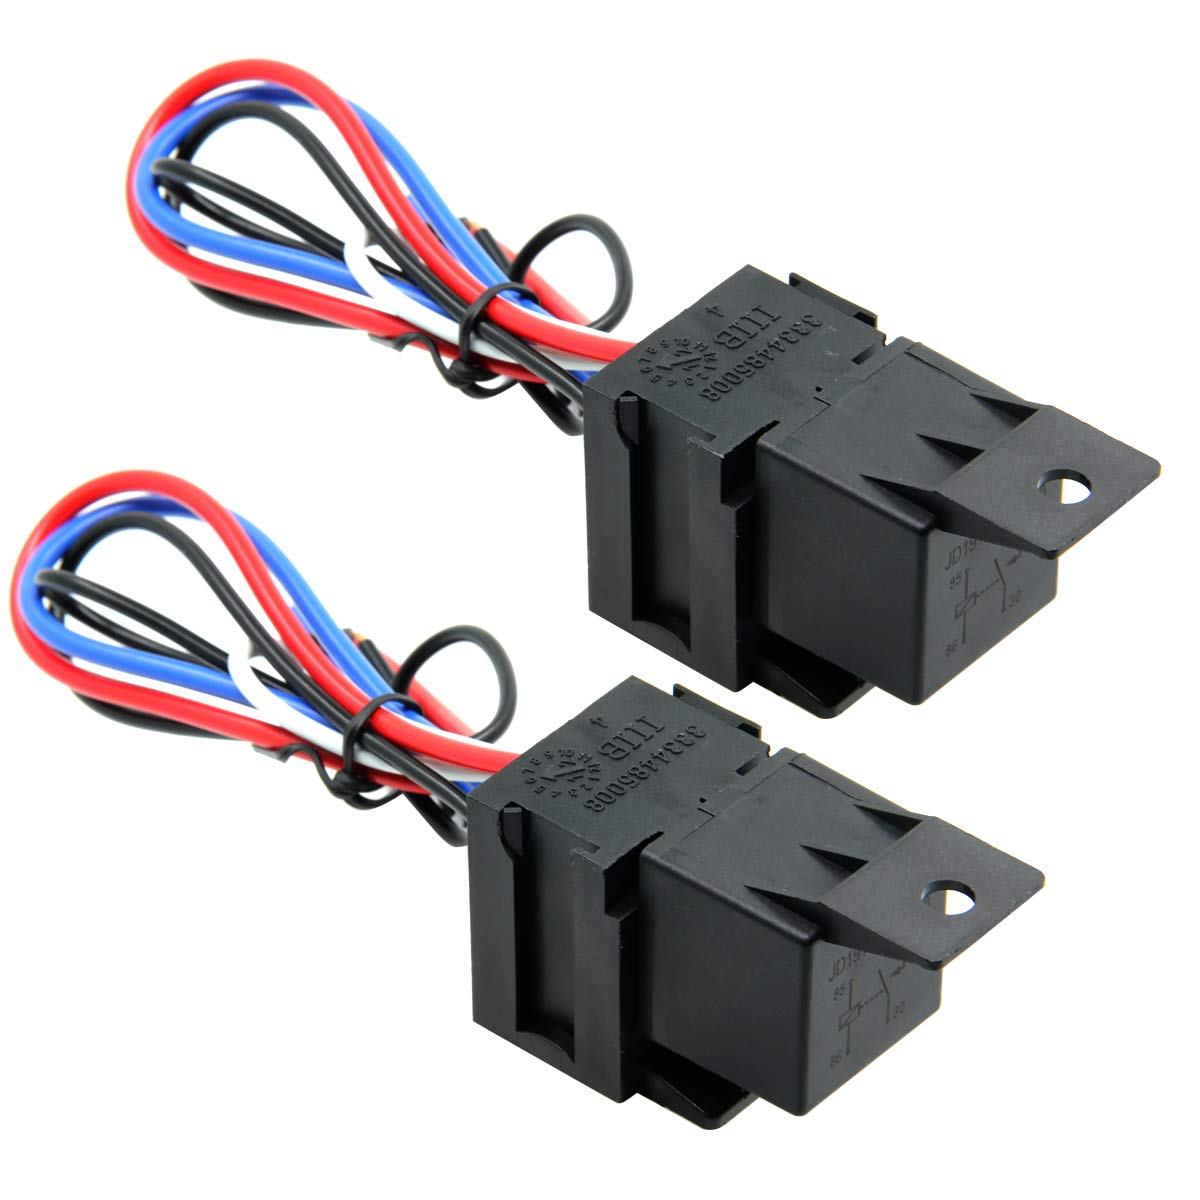 Car Truck Motor Heavy Duty Heavy Duty 5-Pin 80A 12V On//Off Normally Open SPDT Relay Socket Plug 5 Wire Automotive 1 Pack Ehdis/®